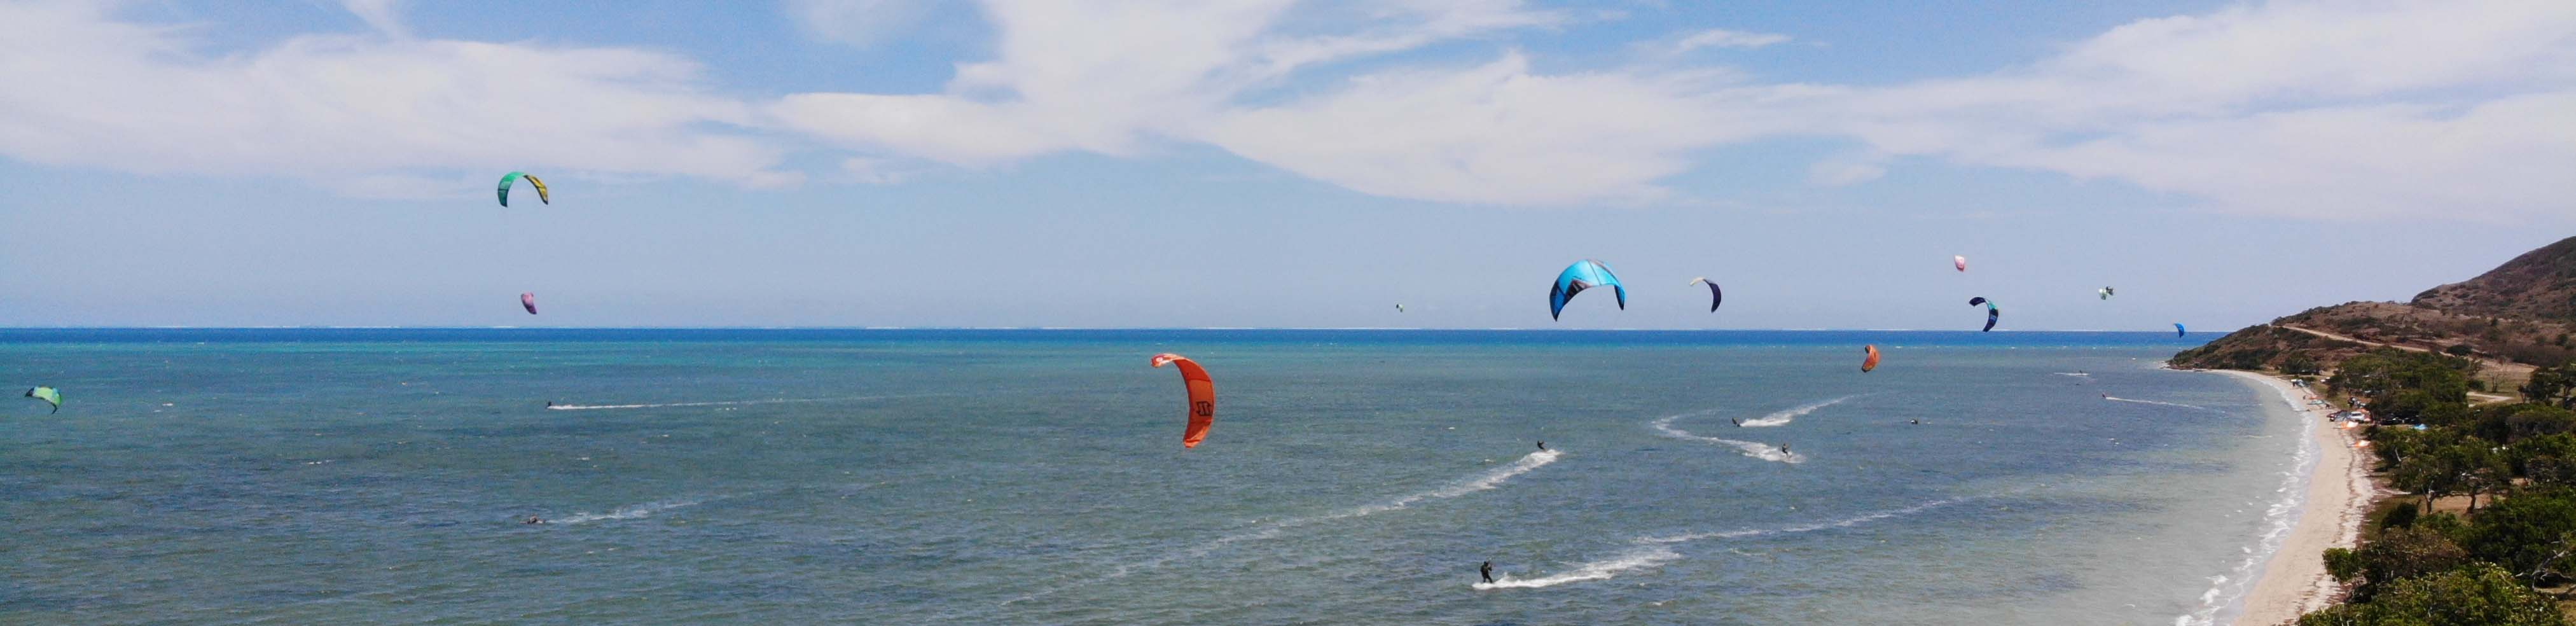 OUANO PLAGE PUBLIQUE – KITE SURF – NC – SKYVIEW